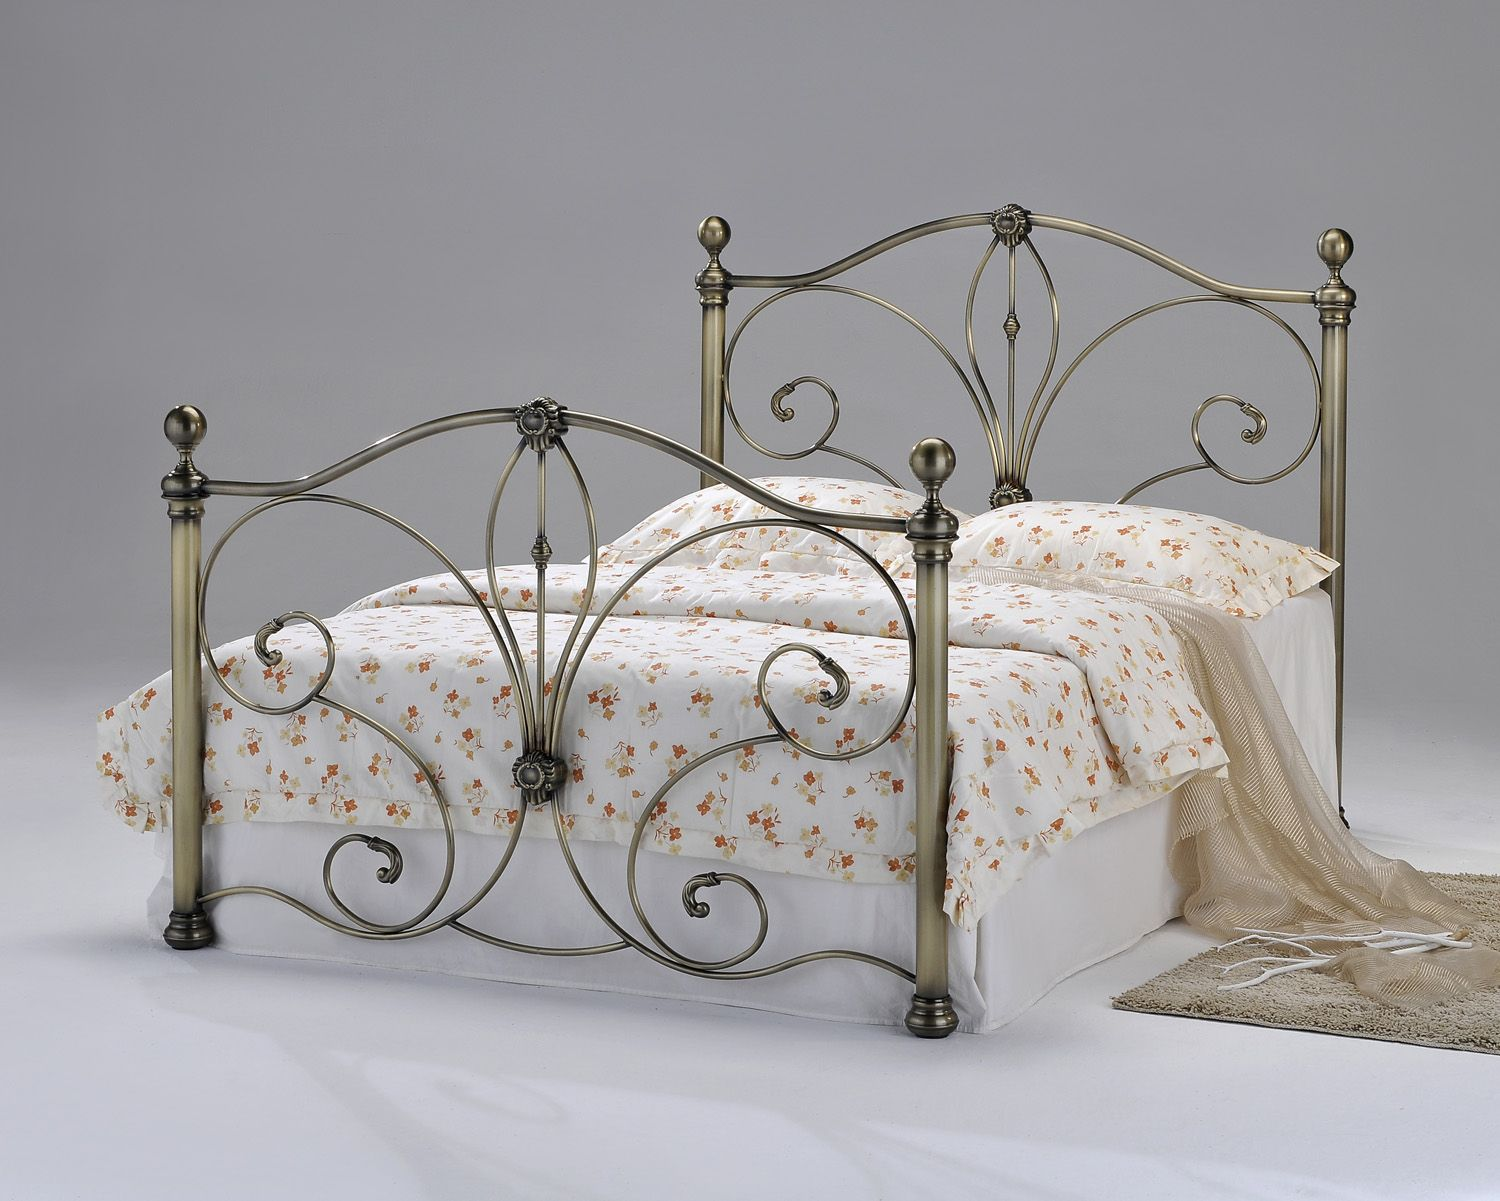 Best 4Ft6 Radiance Antique Brass Bed Frame £529 95 A Truly 400 x 300